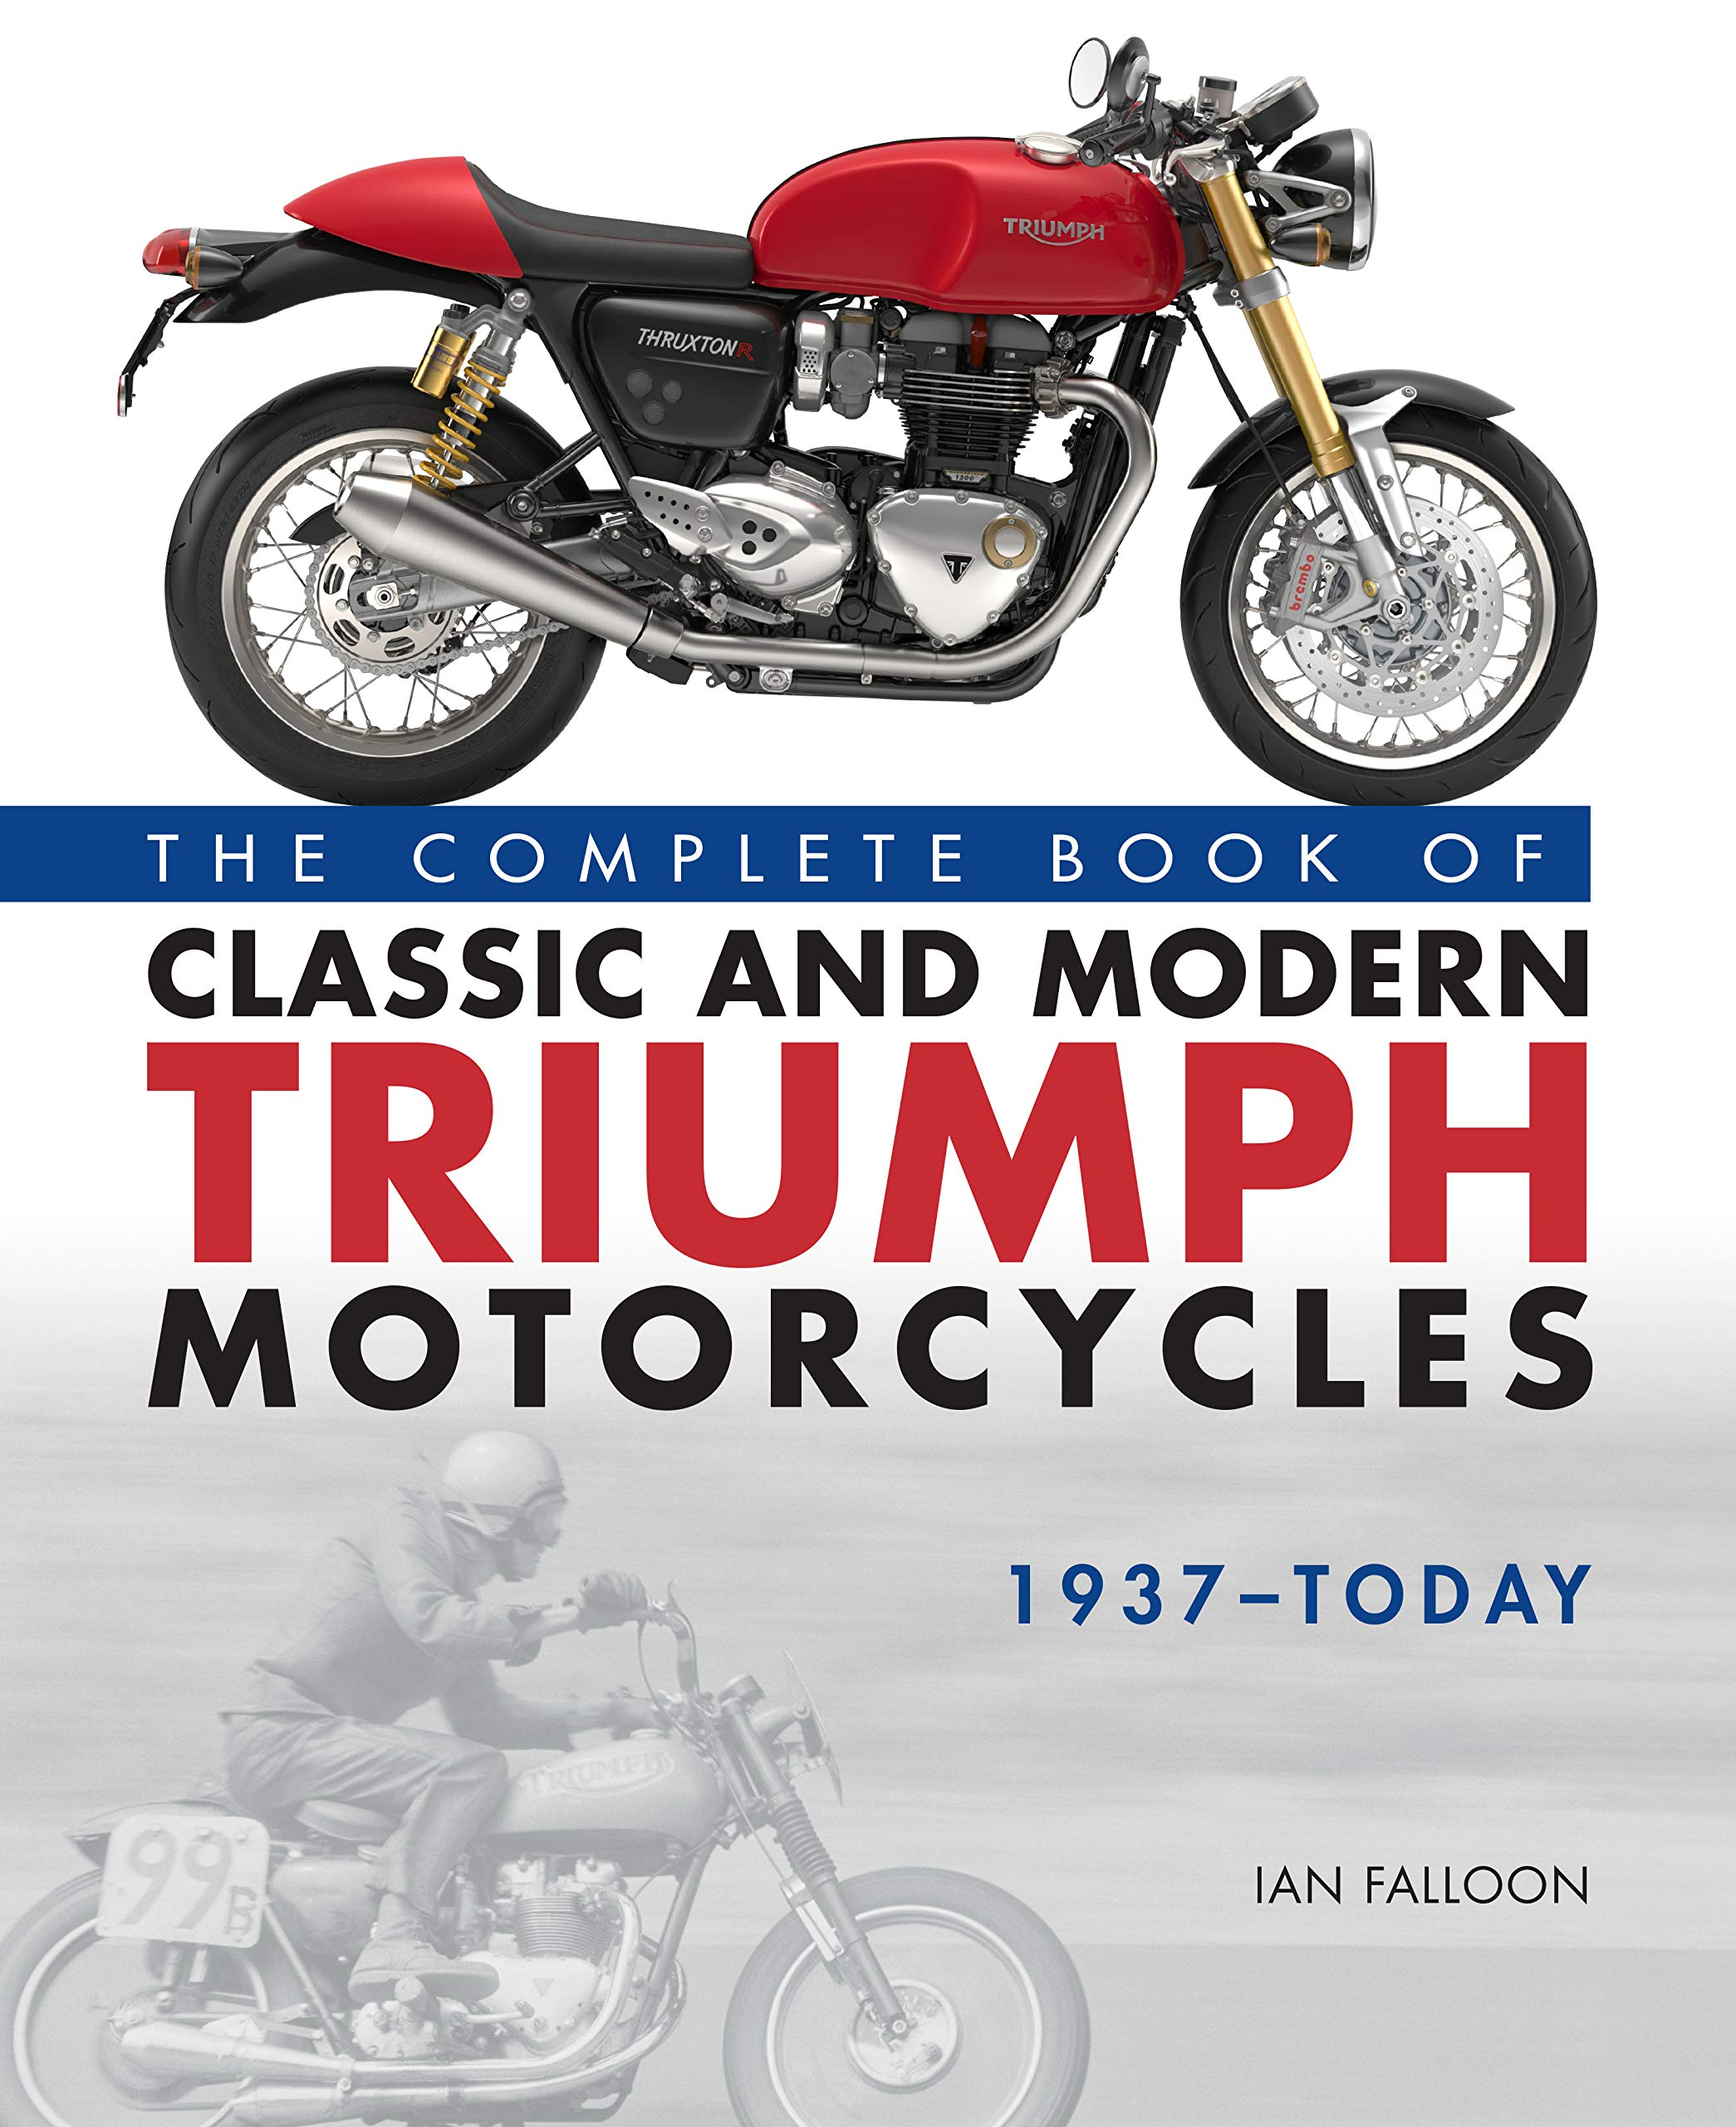 Image OfThe Complete Book Of Classic And Modern Triumph Motorcycles 1937-Today